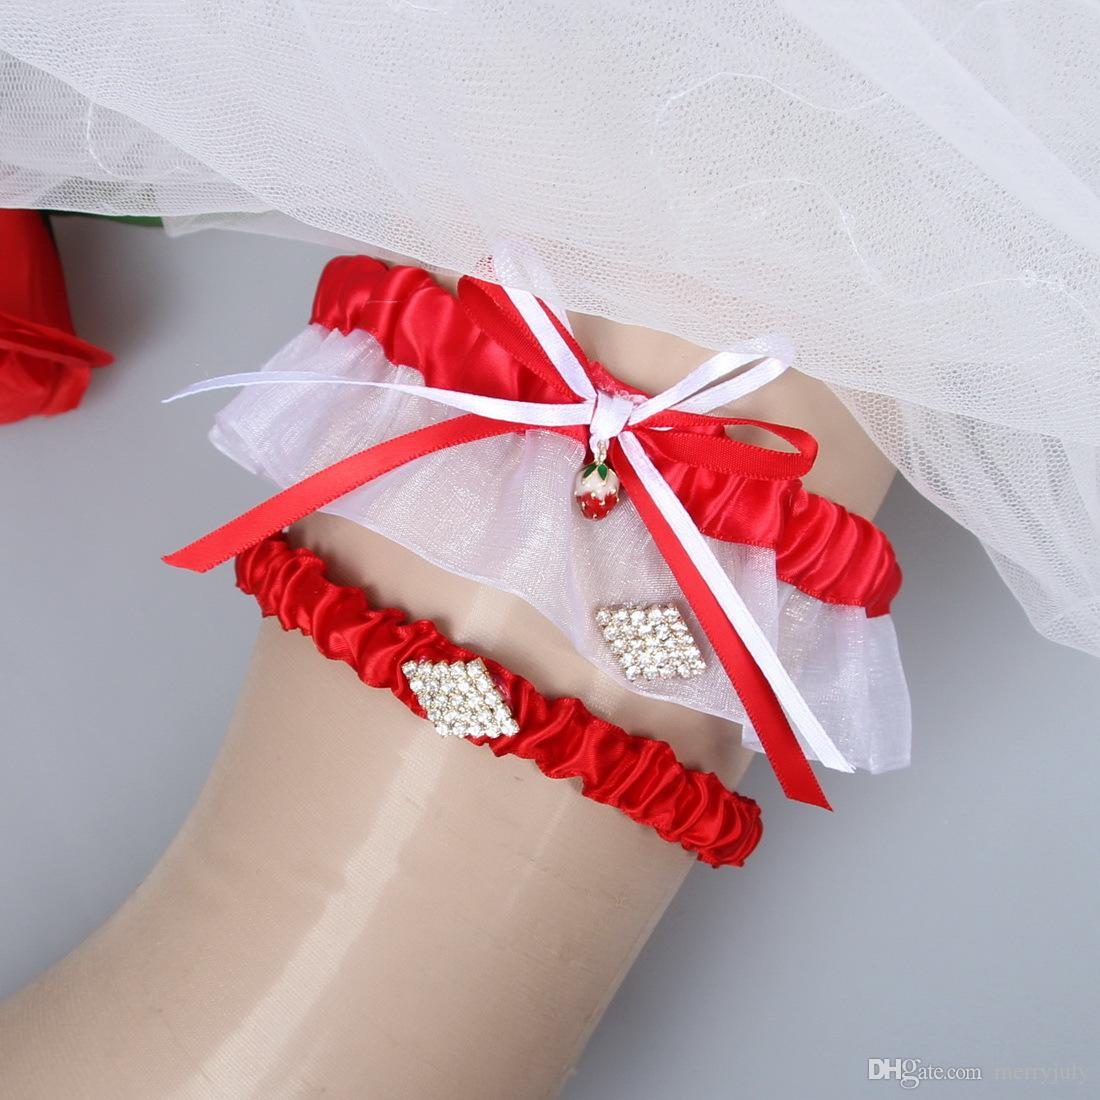 Red Wedding Garters: Red Prom Wedding Garter Bridal Garter Set With Rhinestones